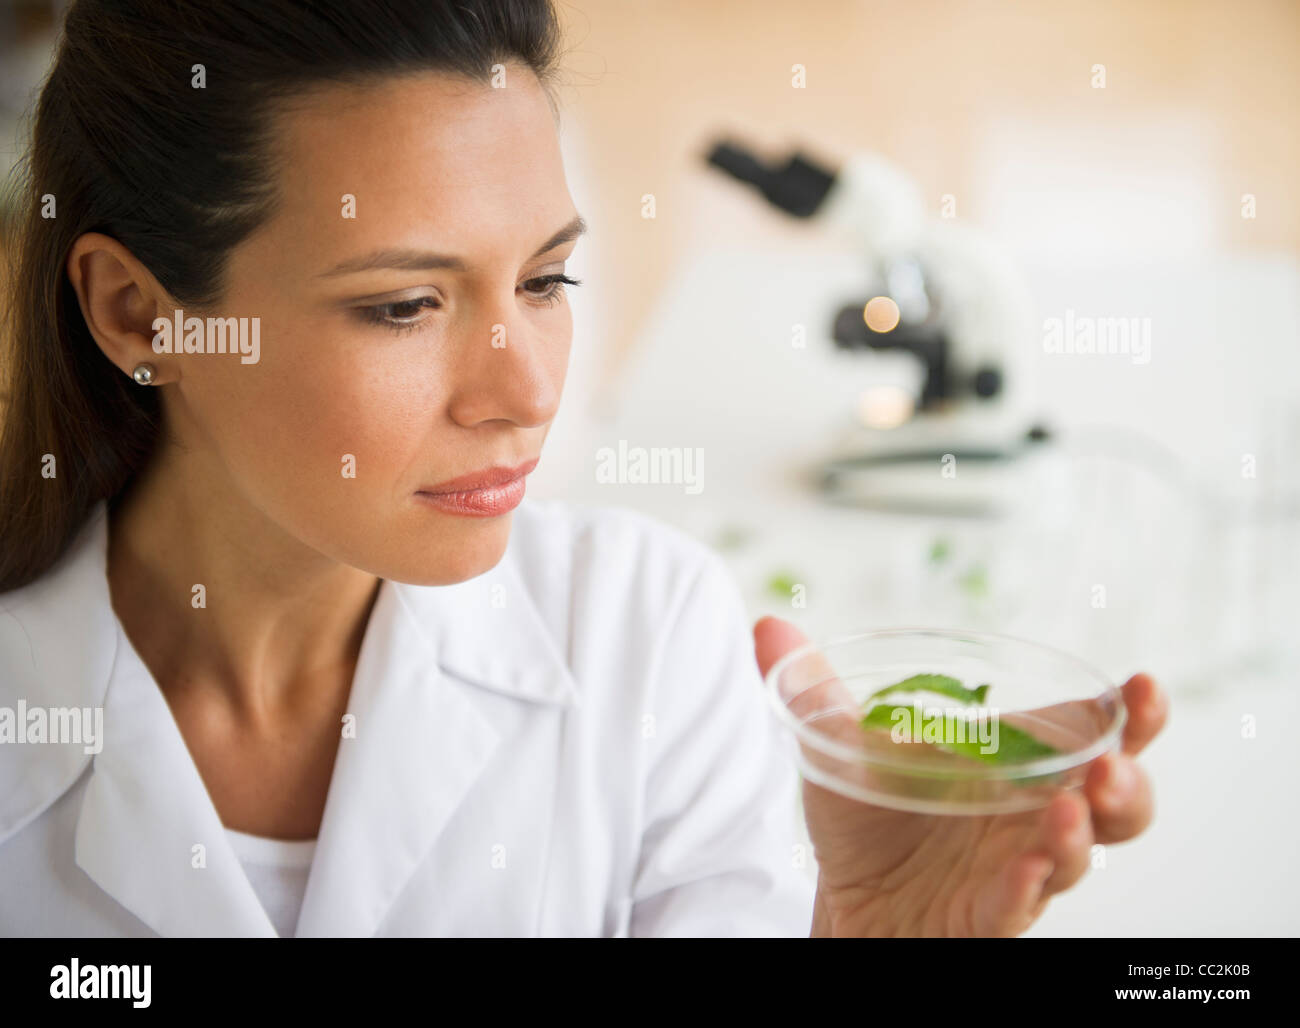 USA, New Jersey, Jersey City, Female scientist examining sample - Stock Image